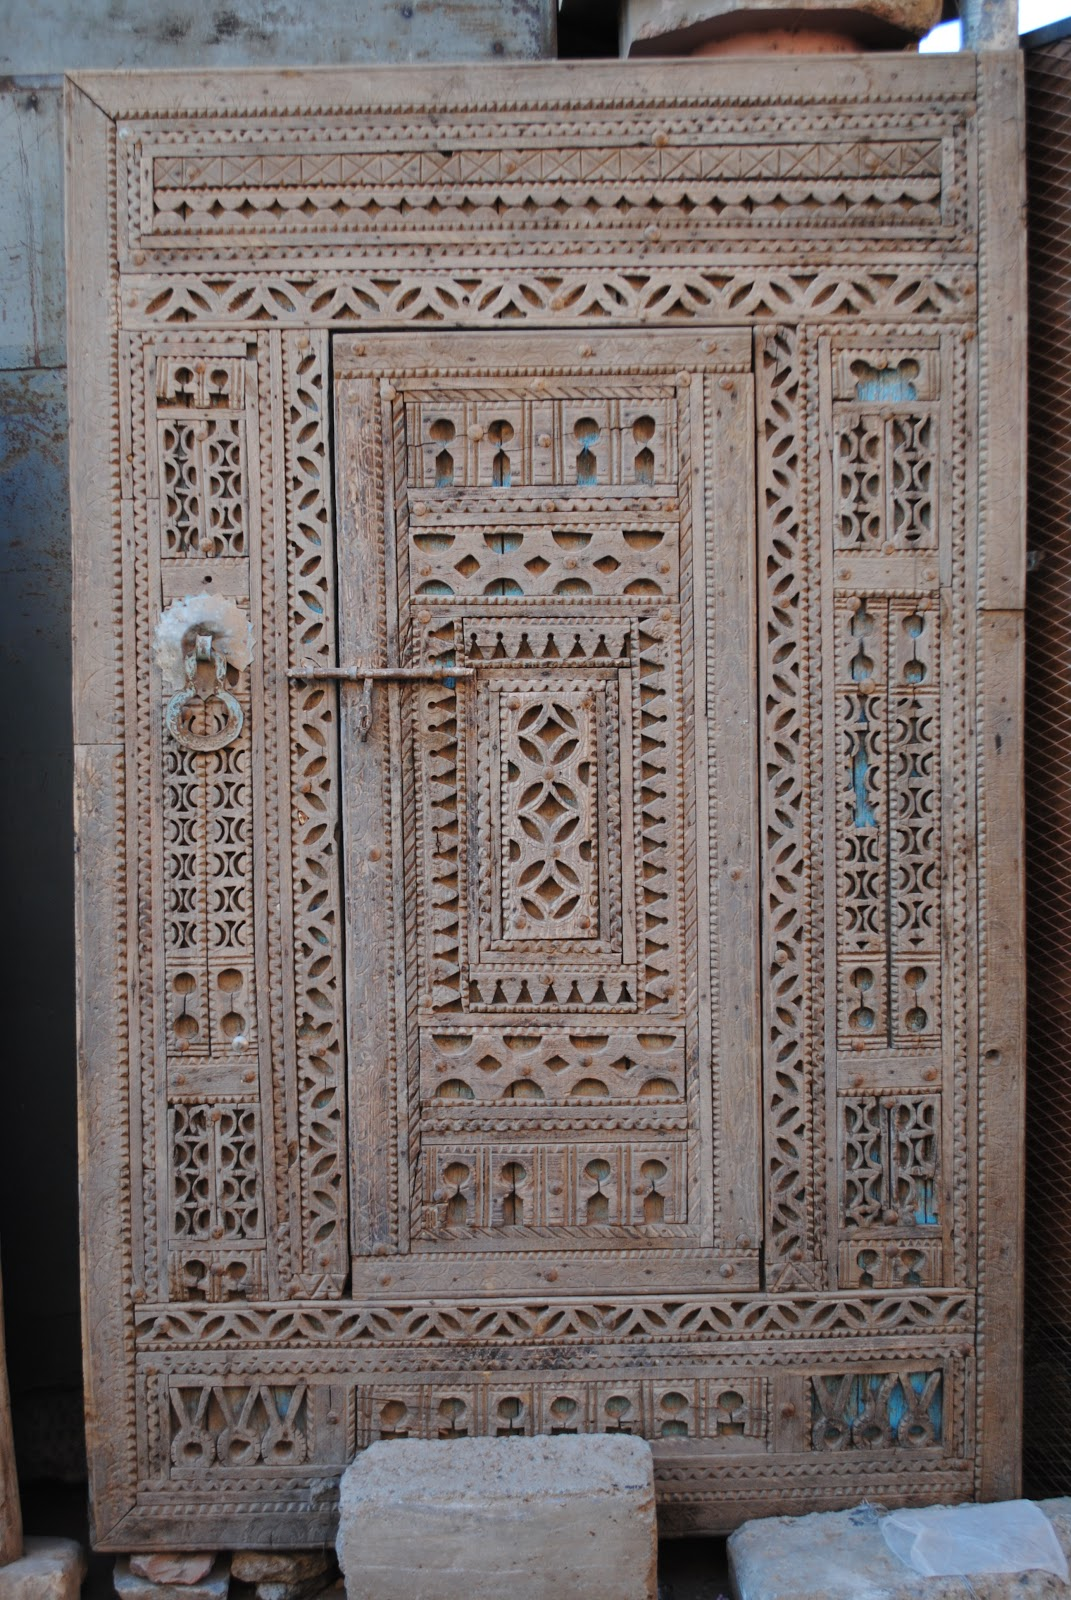 ... many shops to check out and compare, perhaps one of the best is Bazaar  & Decoration sur Bois - No.436 / 437. It boasts an impressive selection of  doors, ... - Buying Antique Moroccan Doors At The Marrakech Flea Market - Bab